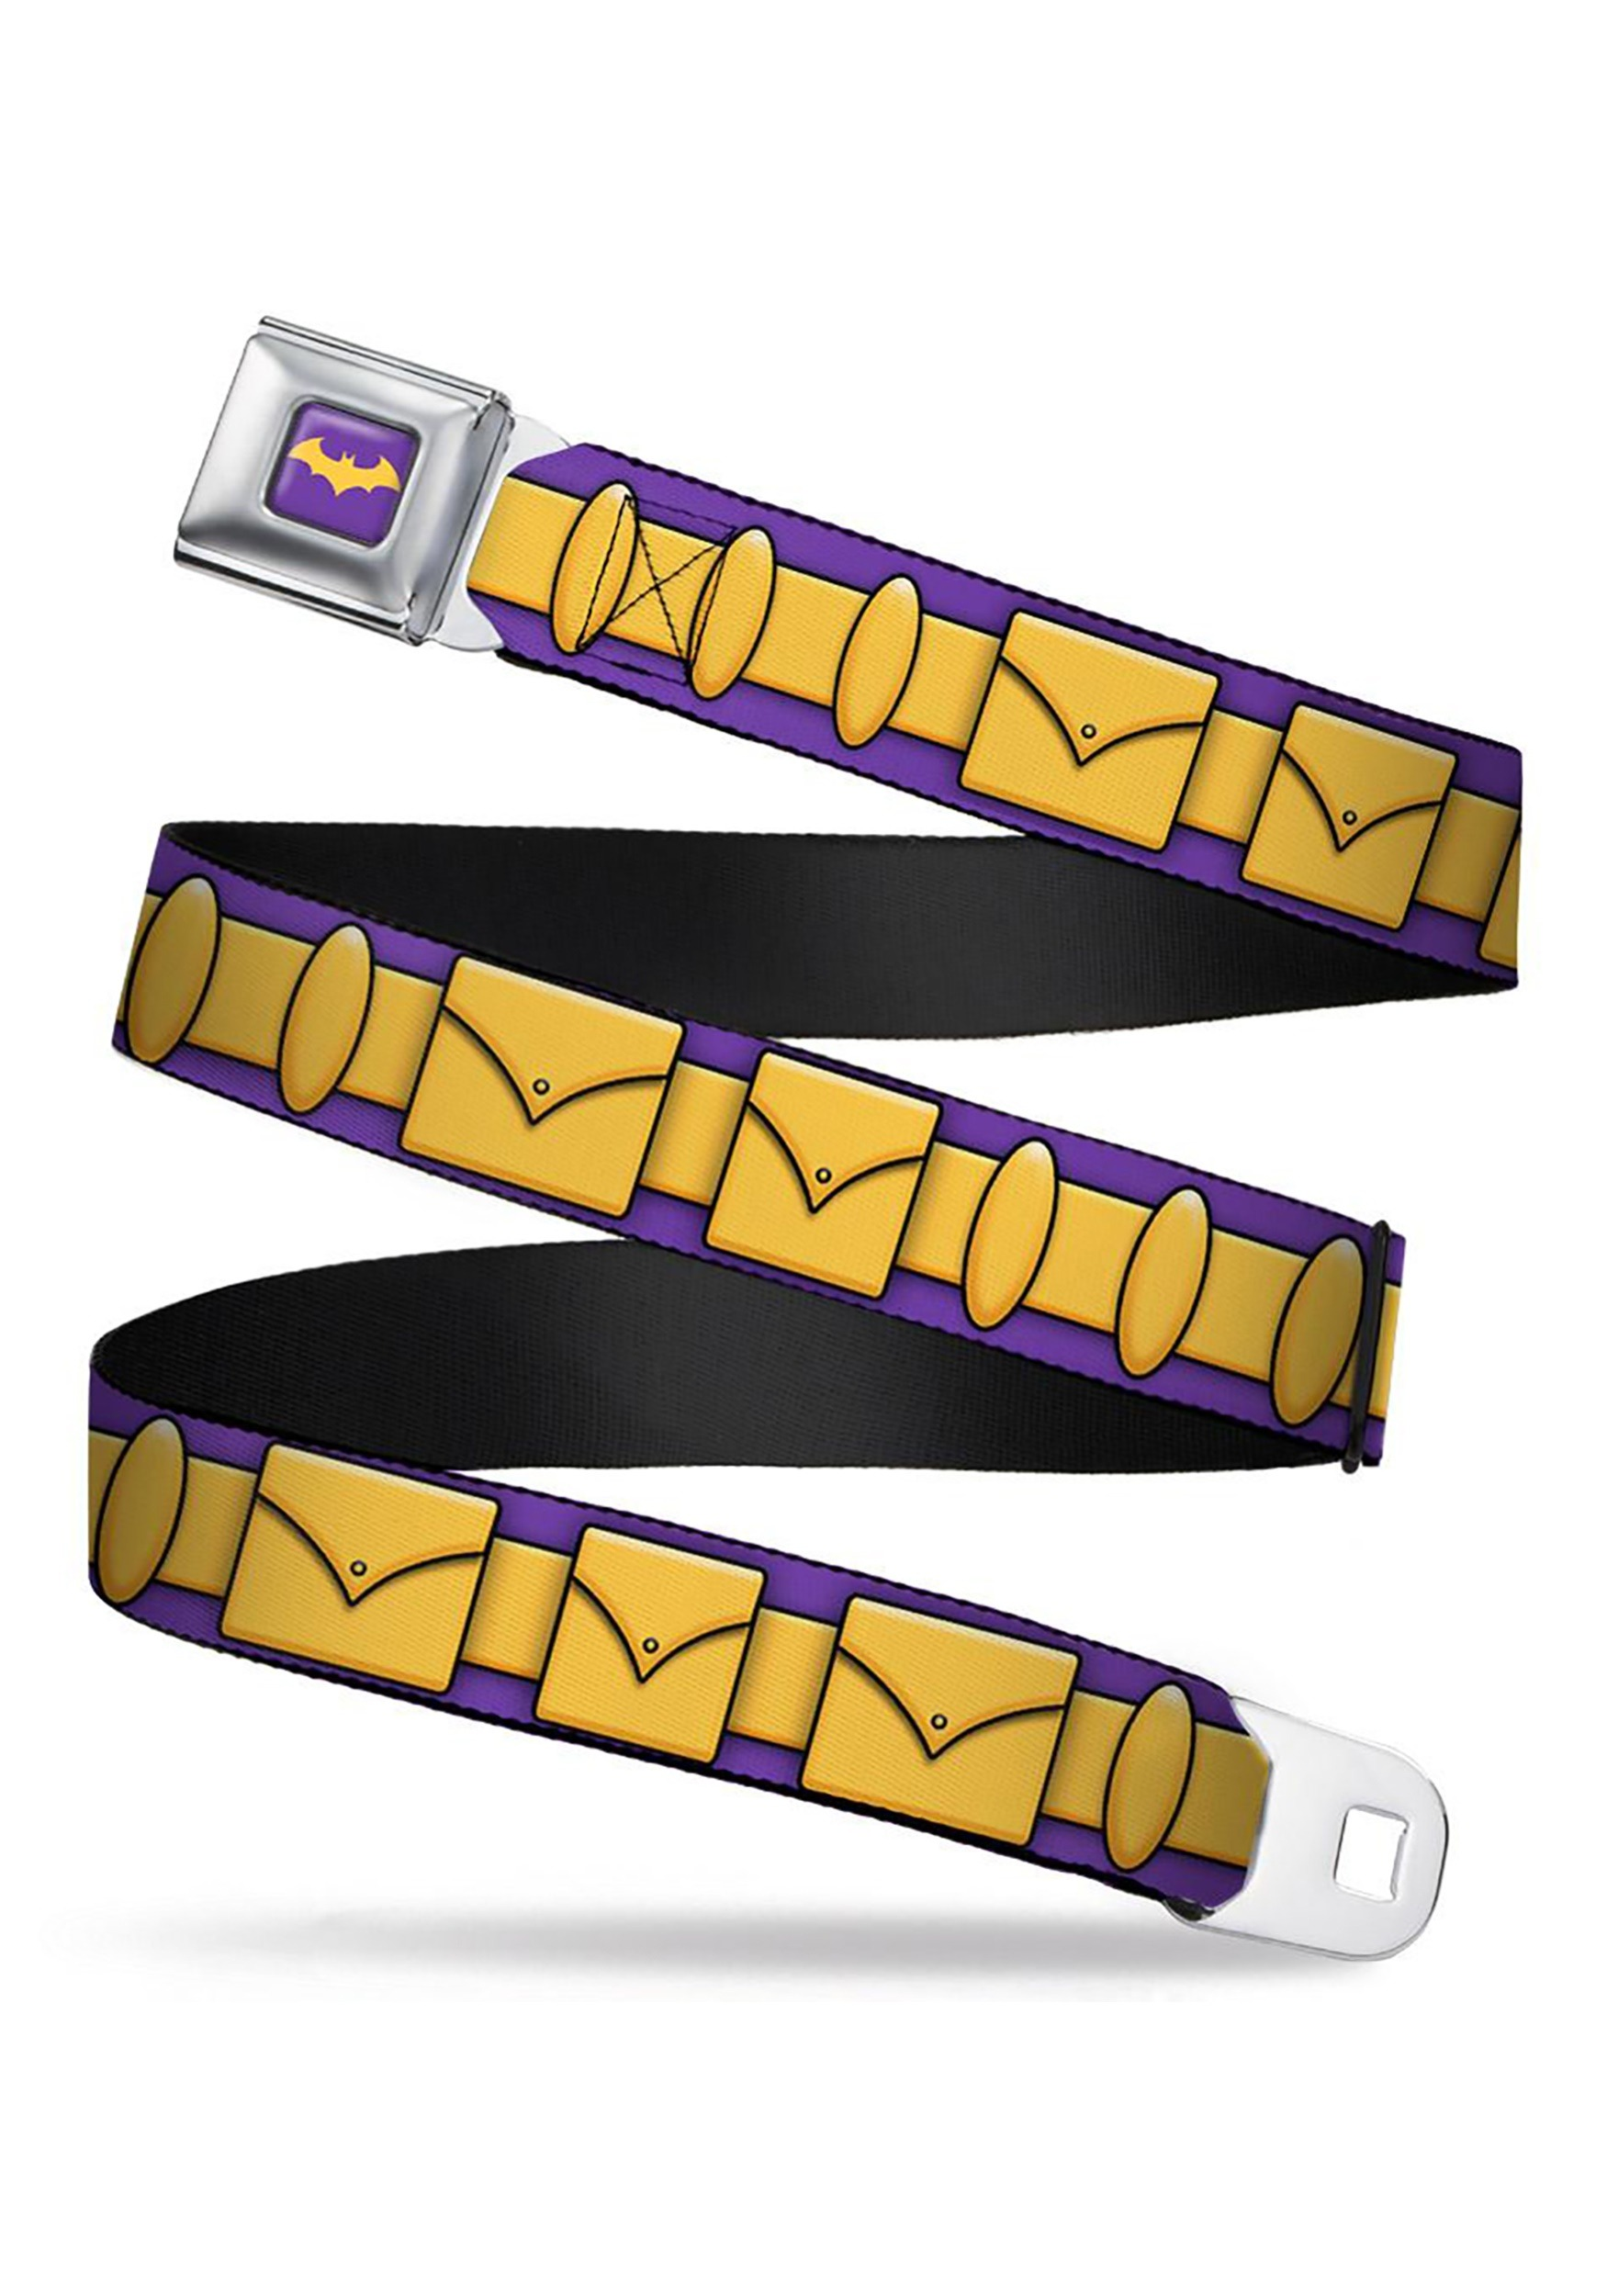 Batgirl_Utility_Belt_PurpleGold_Seatbelt_Buckle_Belt